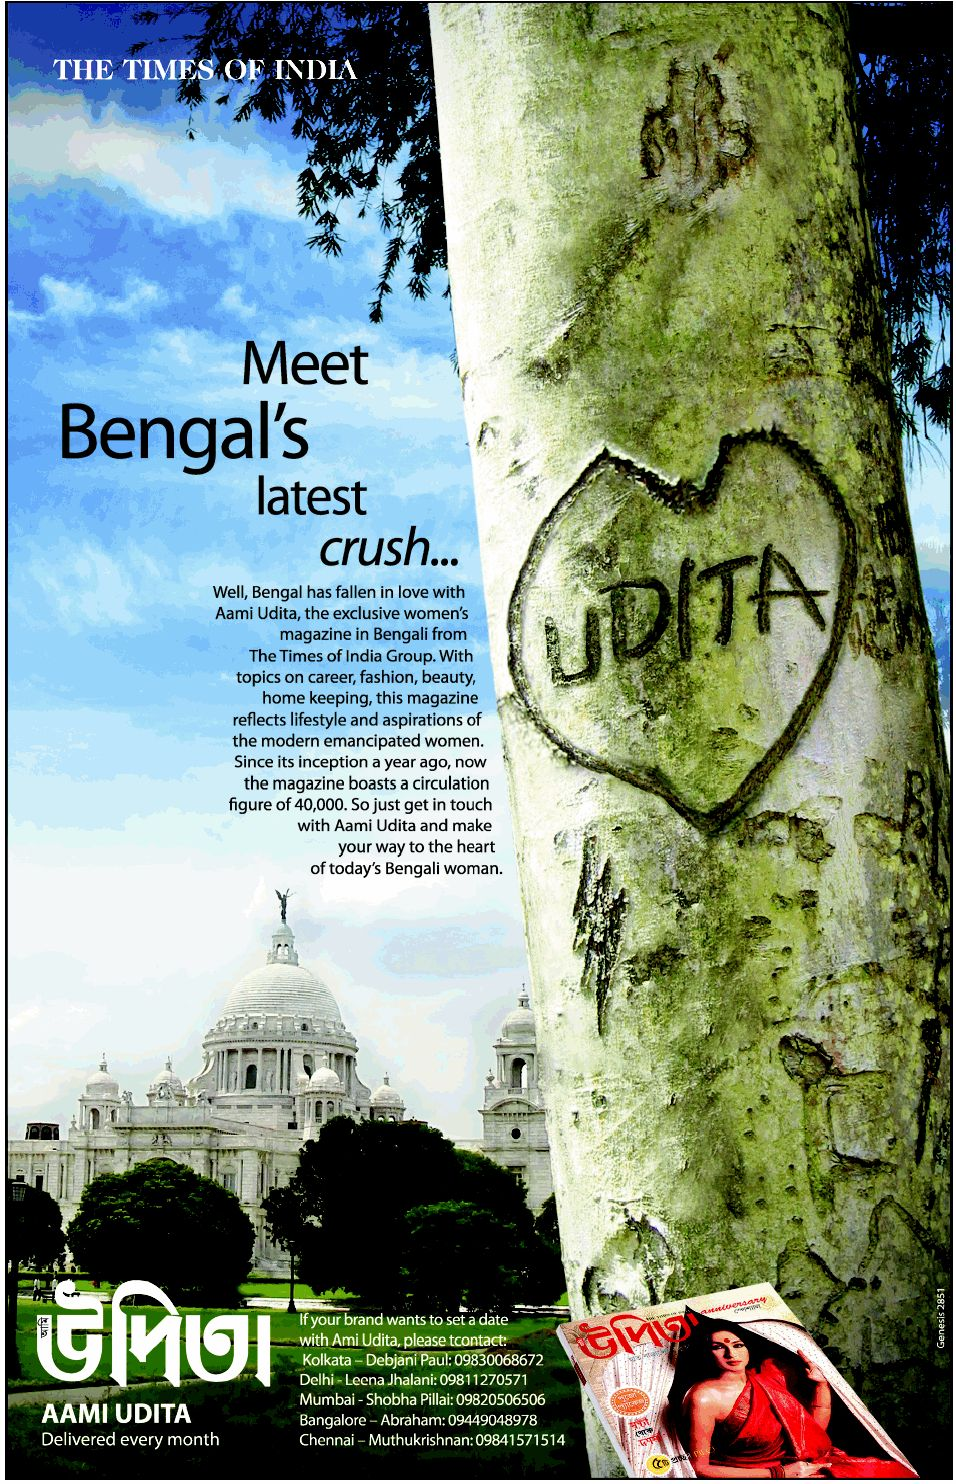 Aami Udita Times of India ad